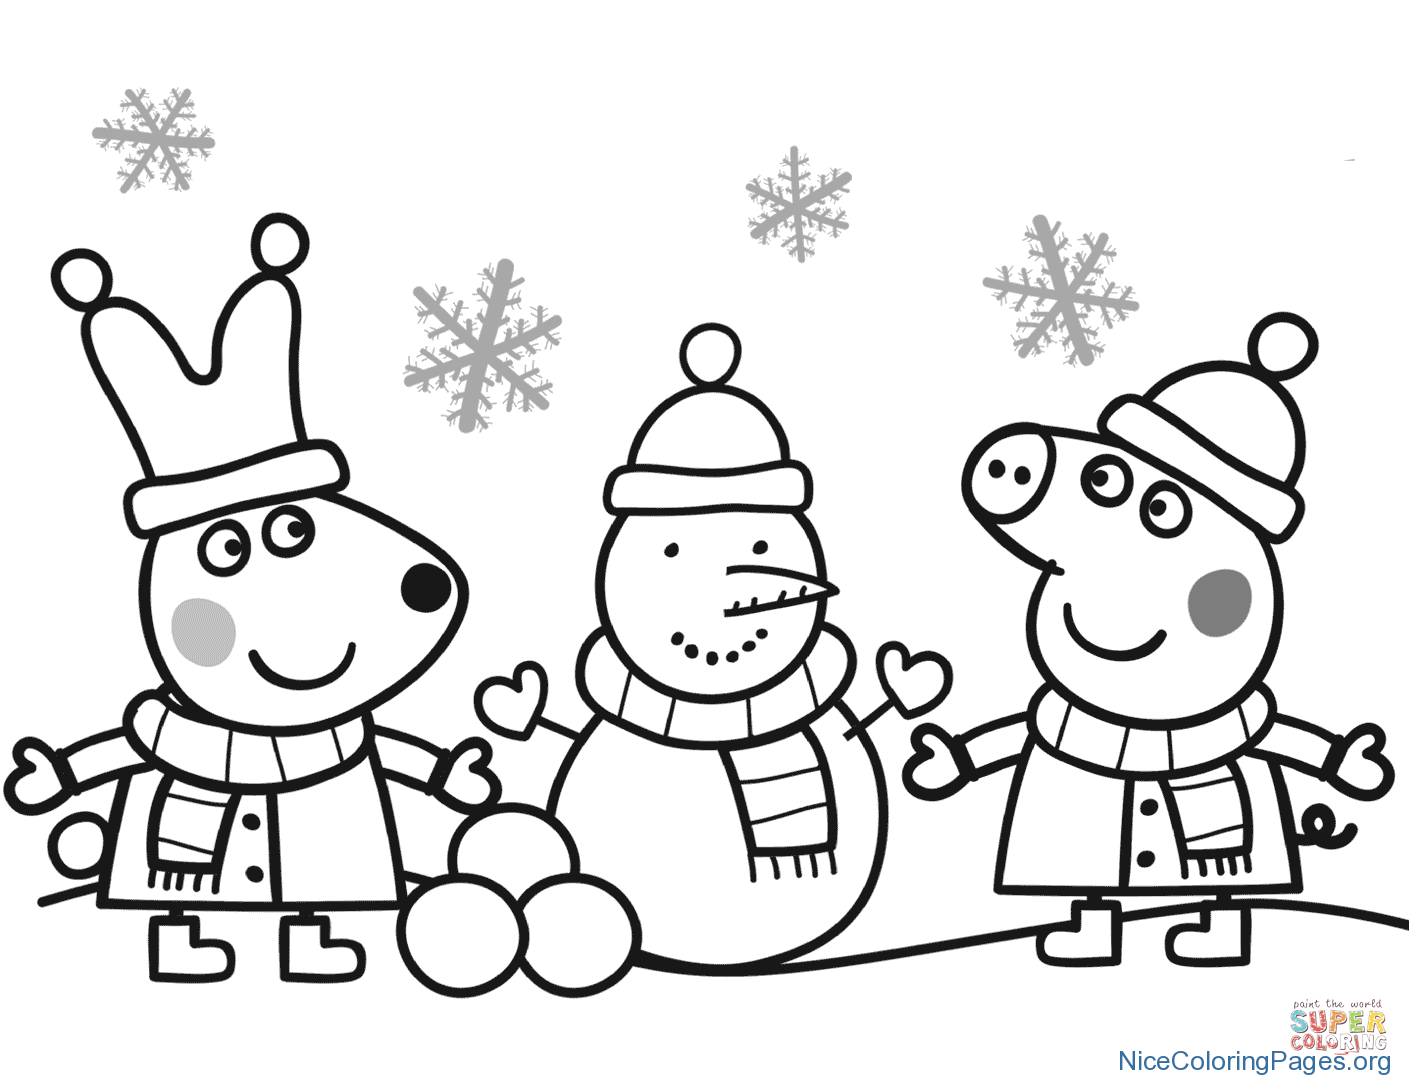 1409x1076 Christmas Snowman Coloring Pages 10 Nice Coloring Pages For Kids